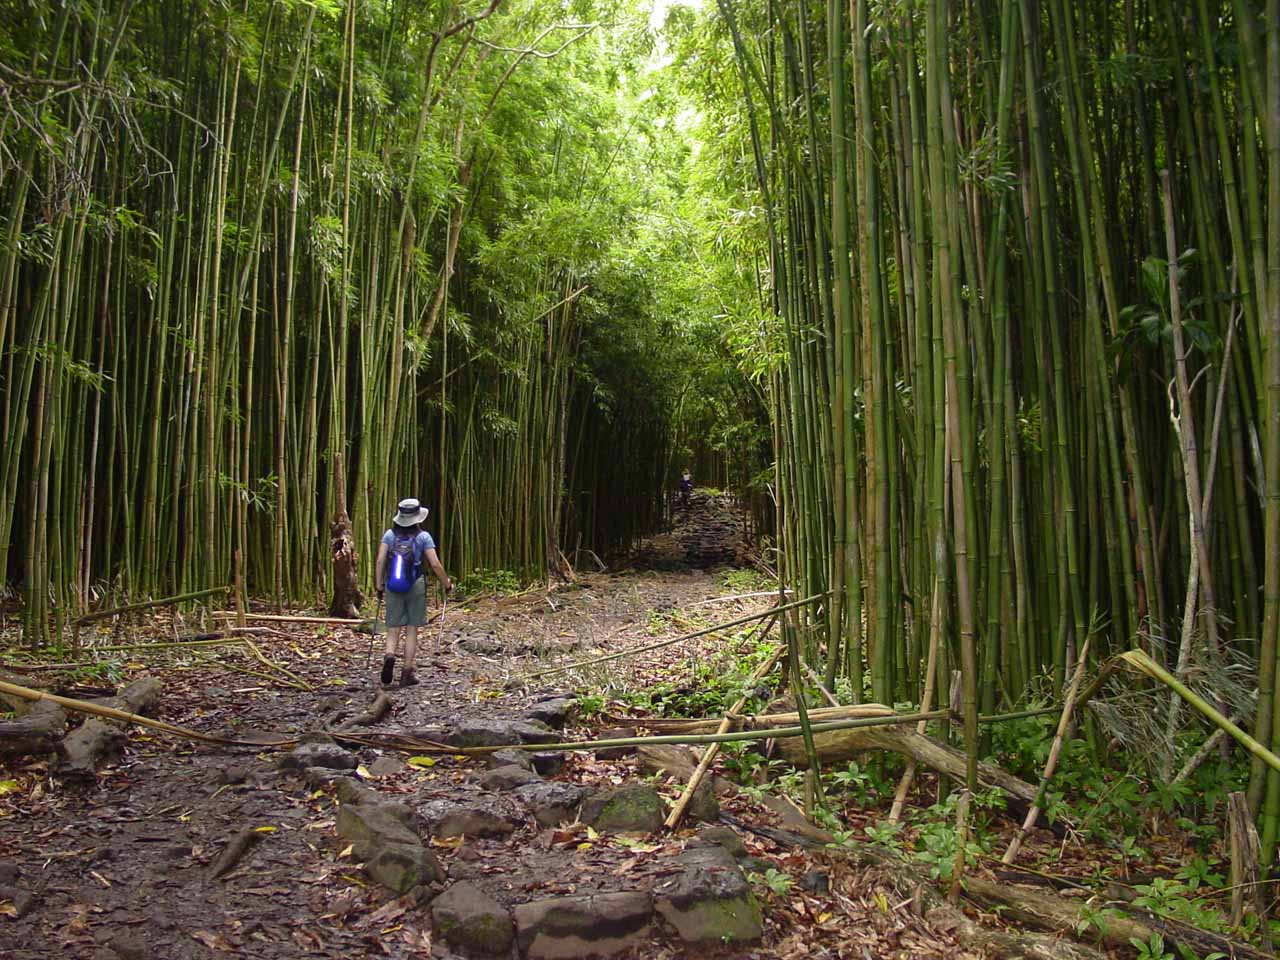 Julie entering the bamboo forest